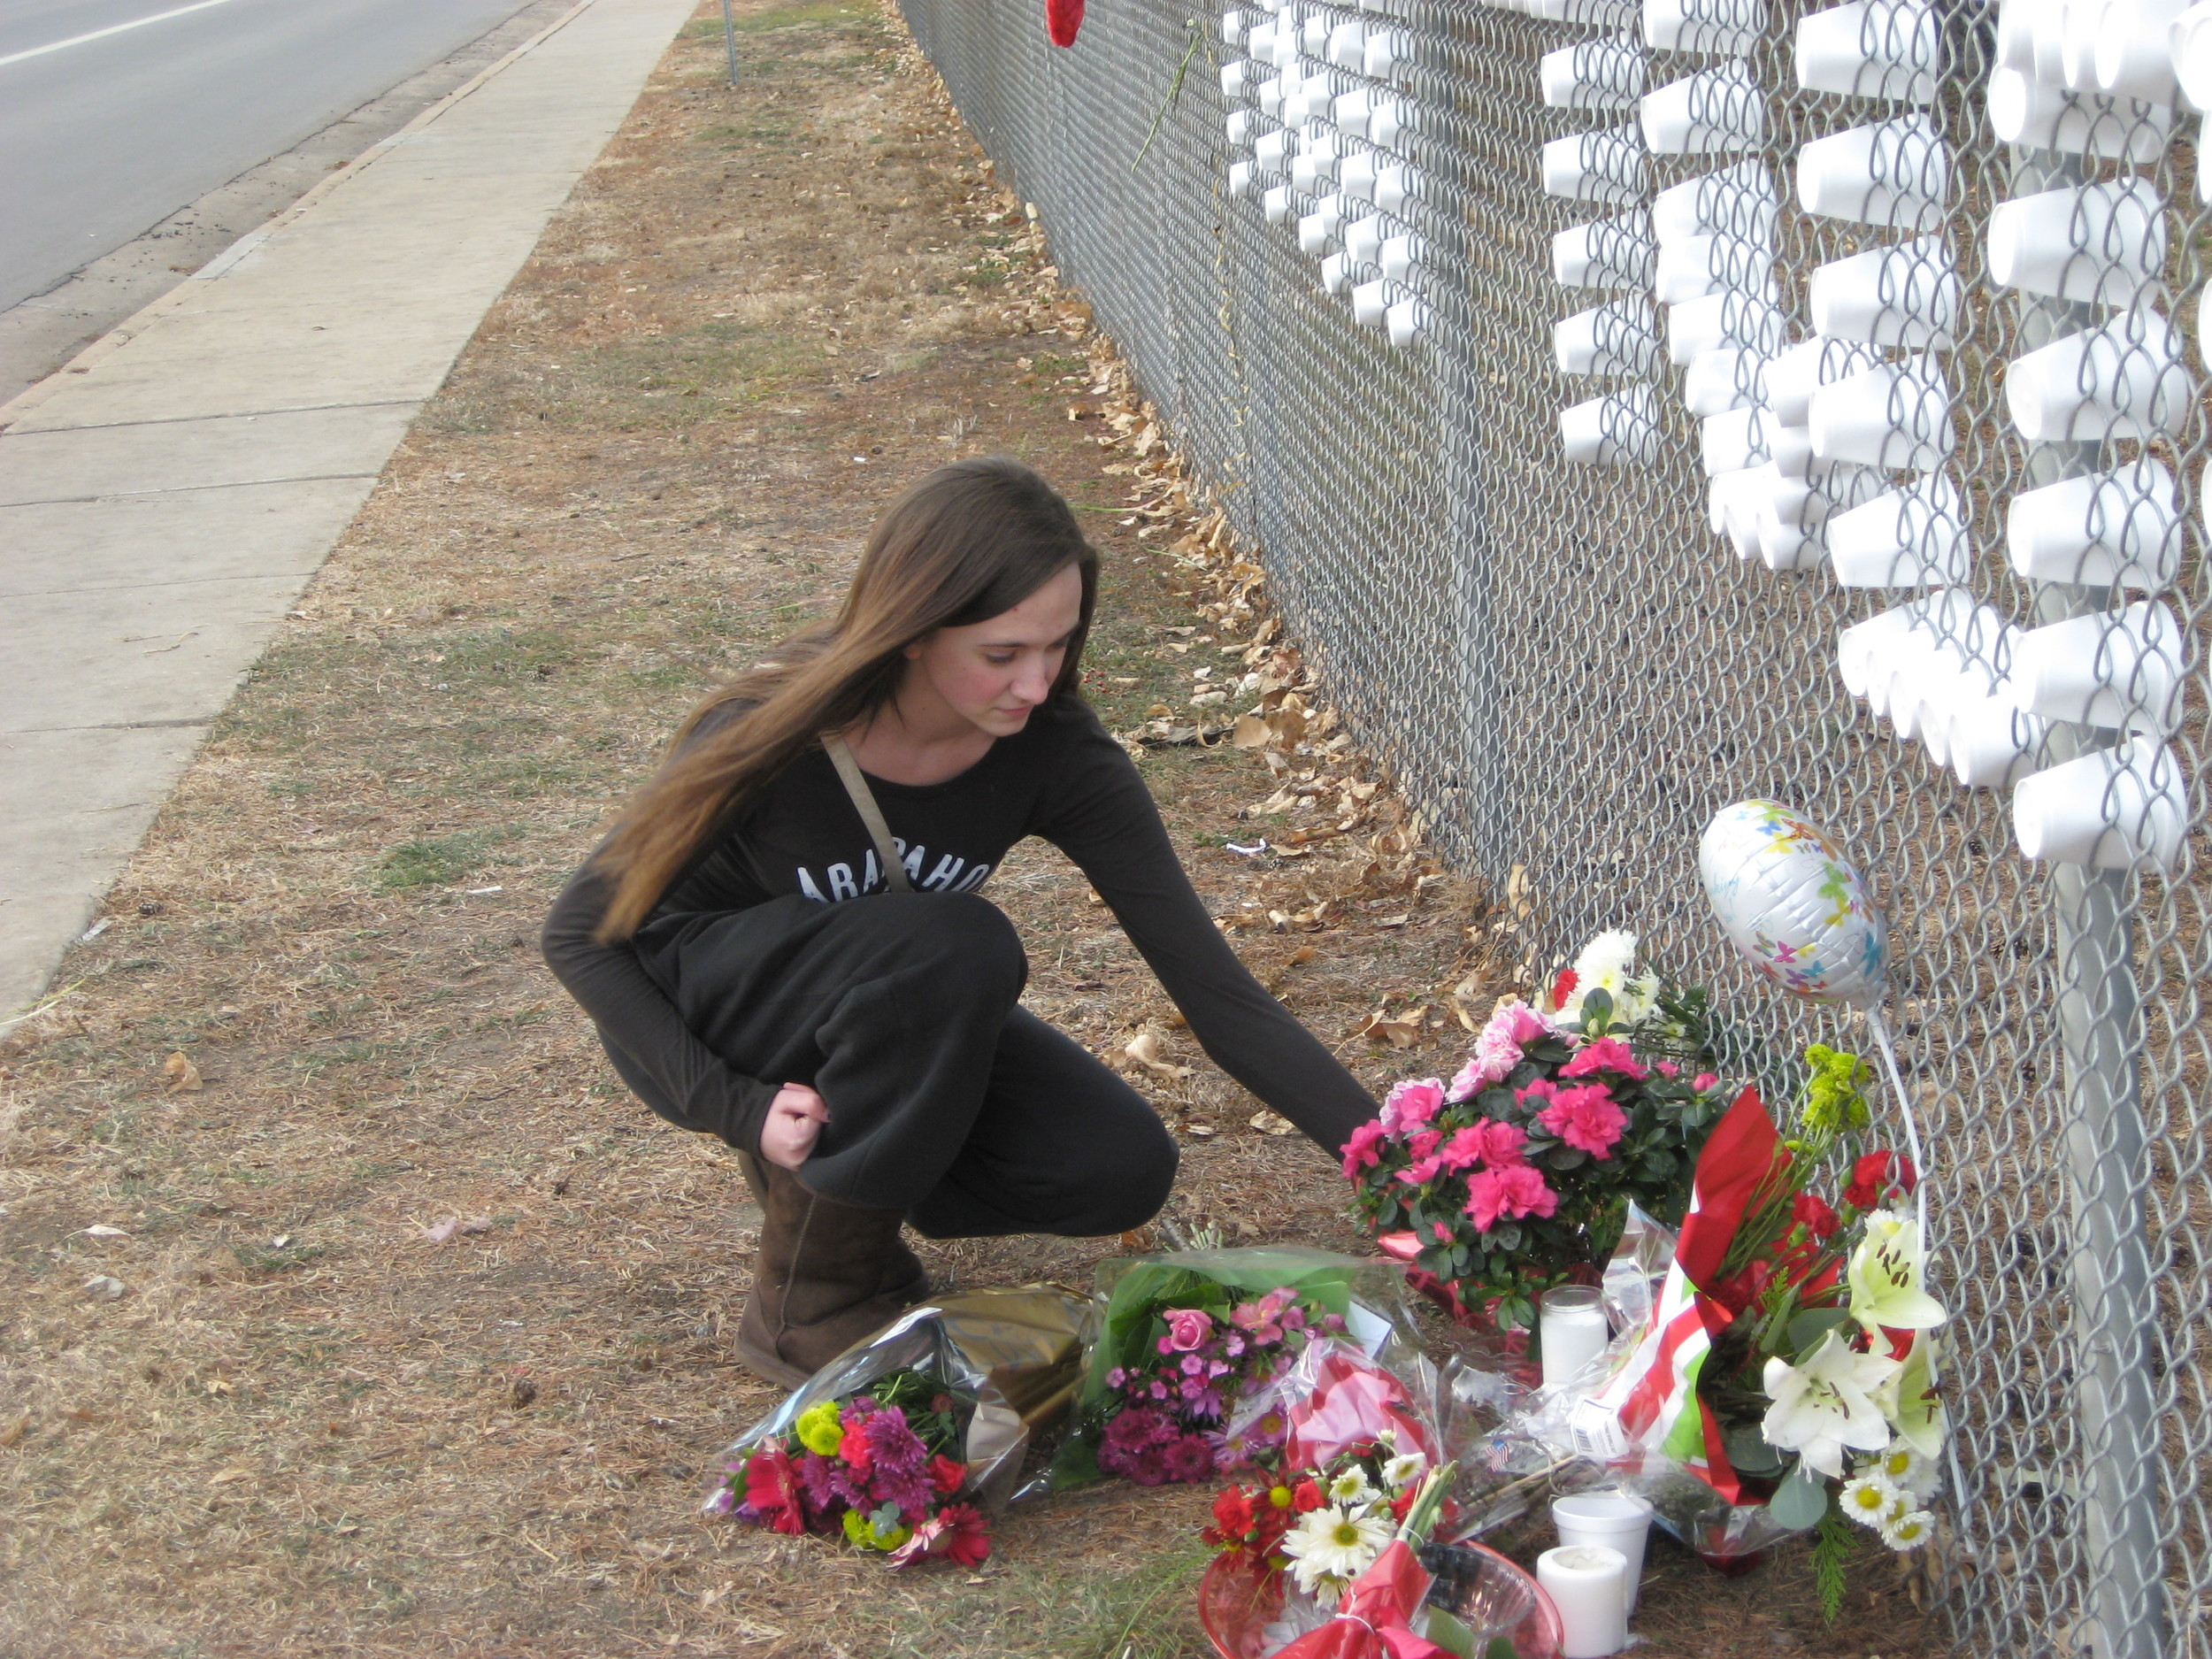 Kaylee Eastridge, an Arapahoe High junior, looks over the flowers left behind as a show of support for Claire Davis.